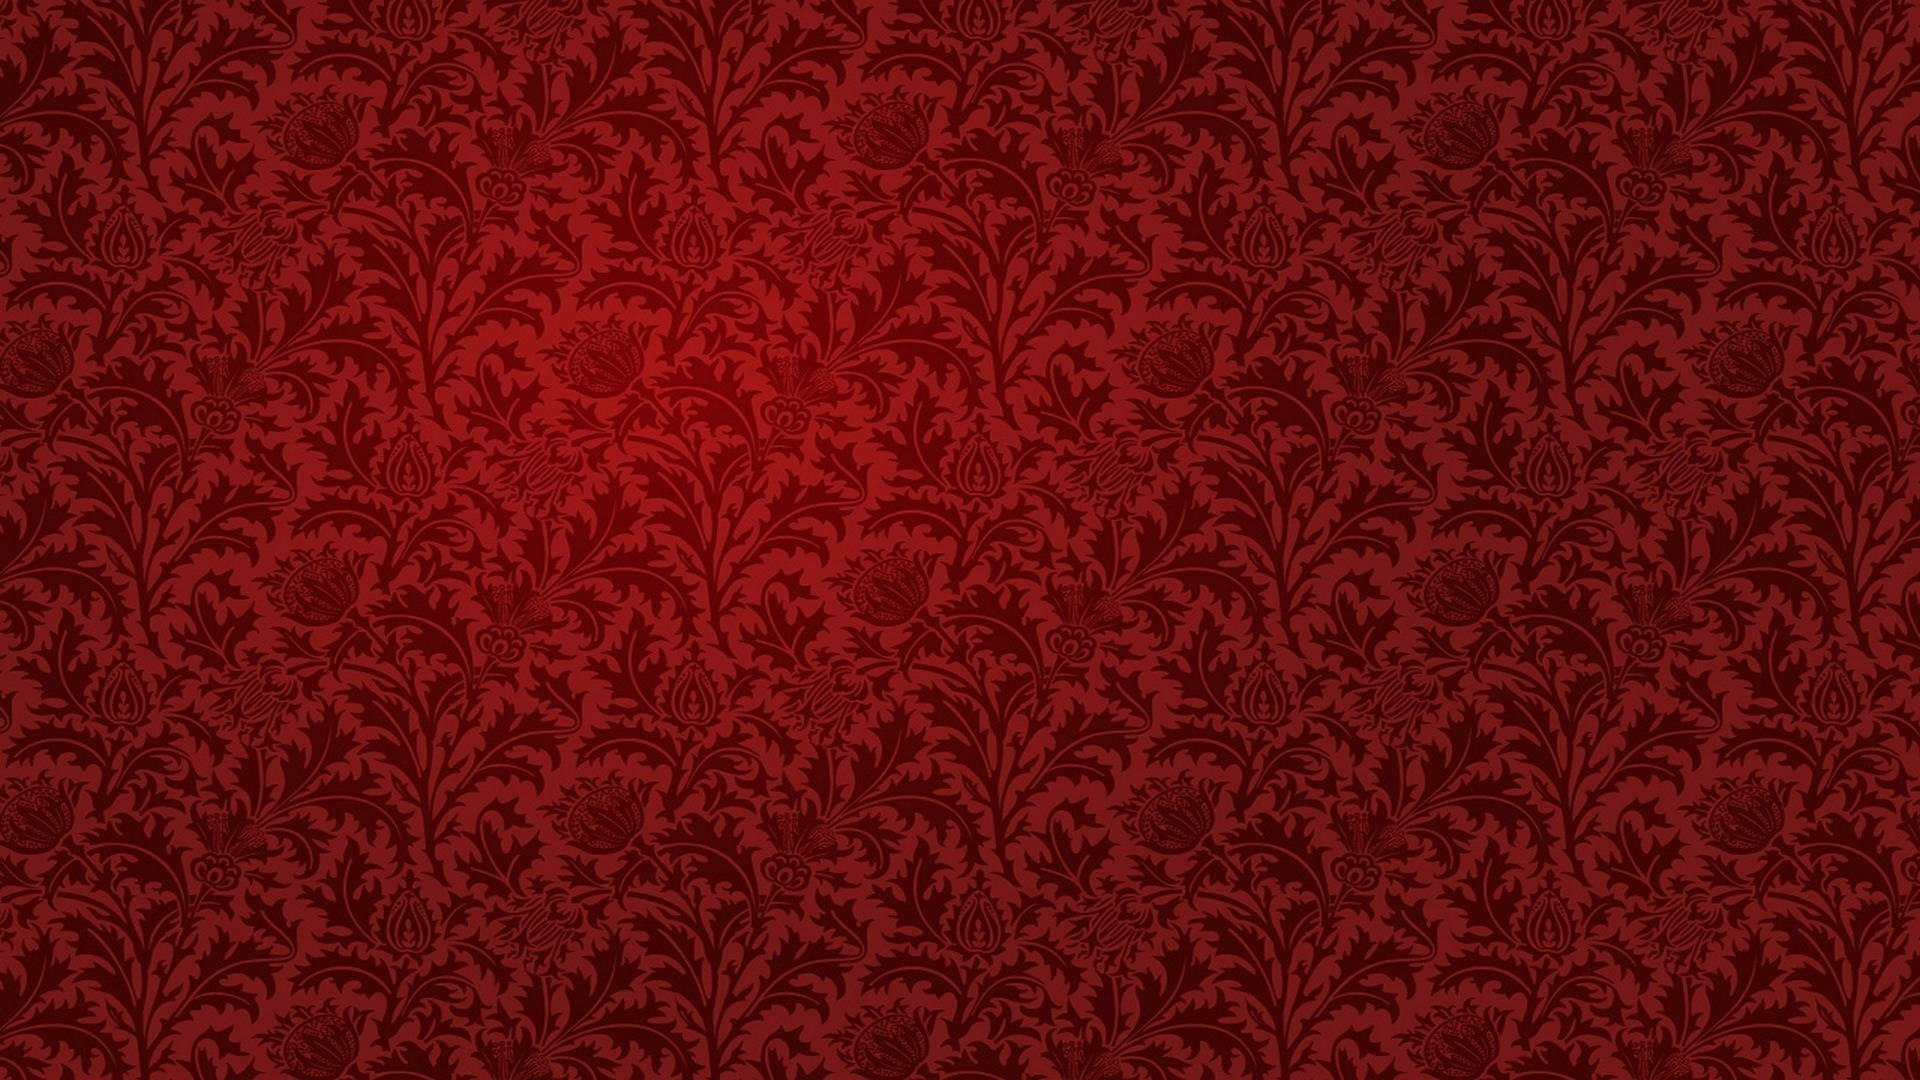 Red Floral Art Wallpaper